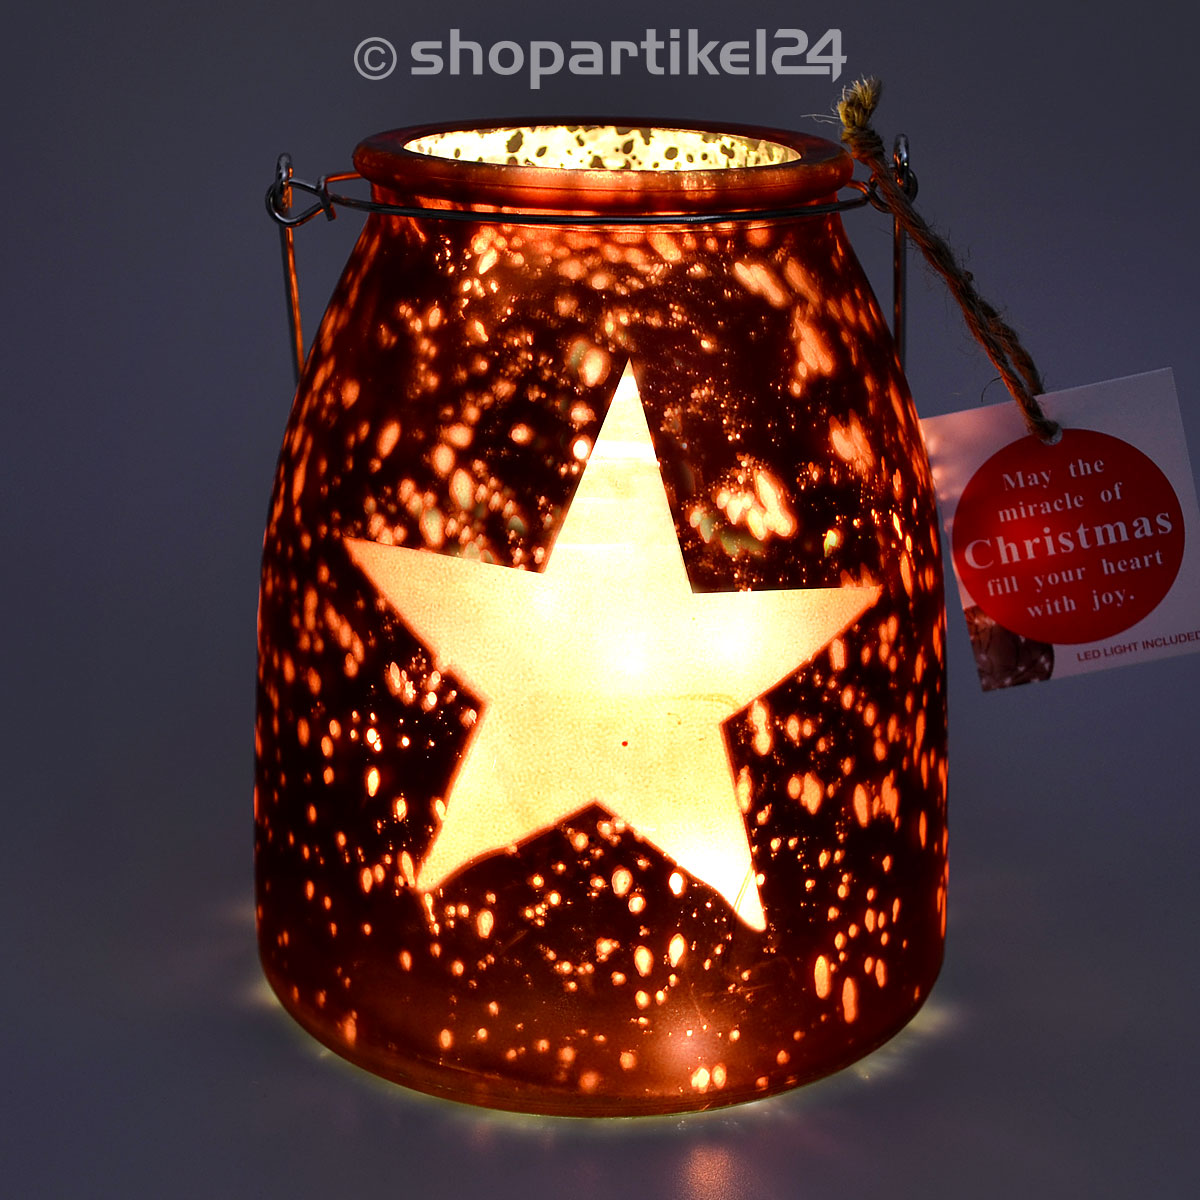 Deko Lichterkette Deko Led Lichterkette Led Lichterkette Drahtbeleuchtung